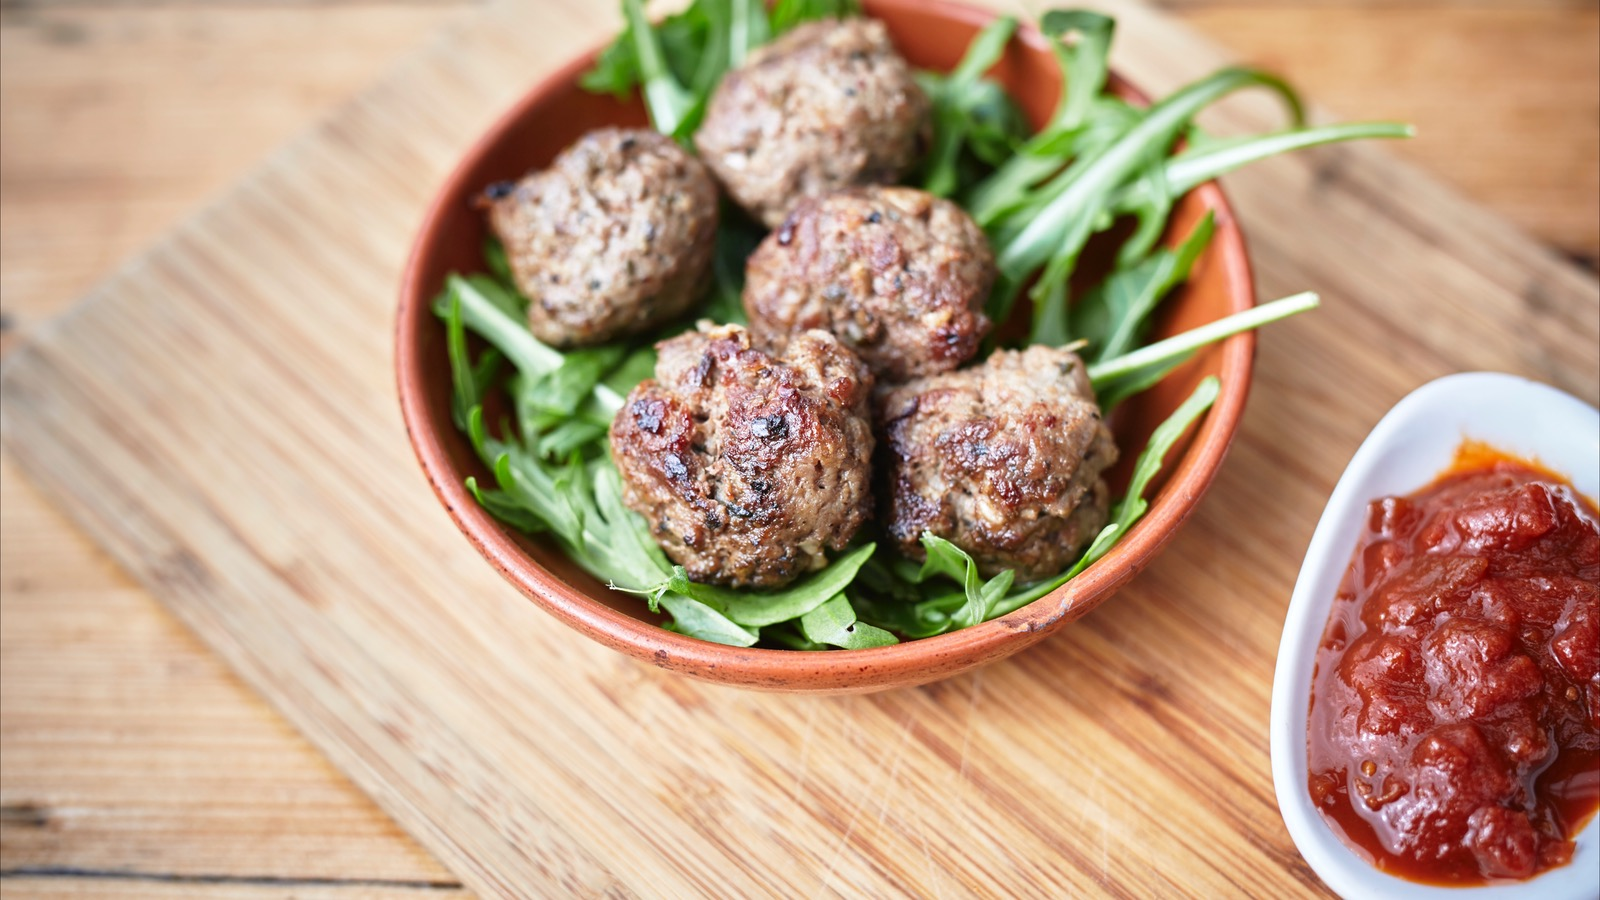 Green Olive at Red Hill - Meatballs